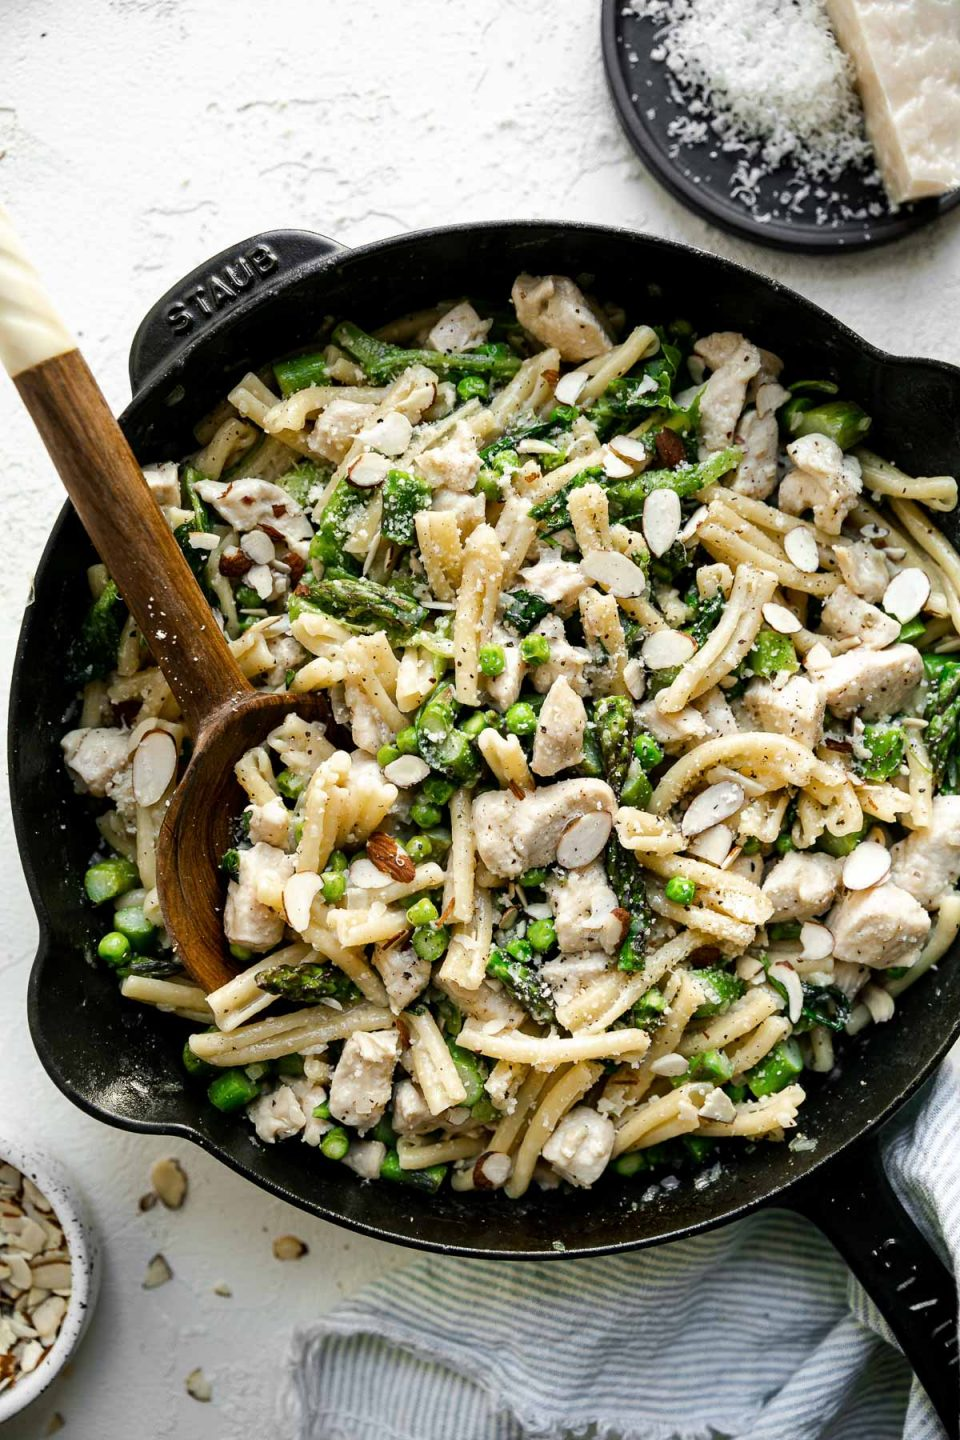 Chicken asparagus pasta in a large black cast iron skillet, atop a white surface. There is a wooden serving spoon nestled in the pasta. The skillet is surrounded by a blue & white striped linen napkin, a small dish of sliced almonds, & a plate with grated parmesan.